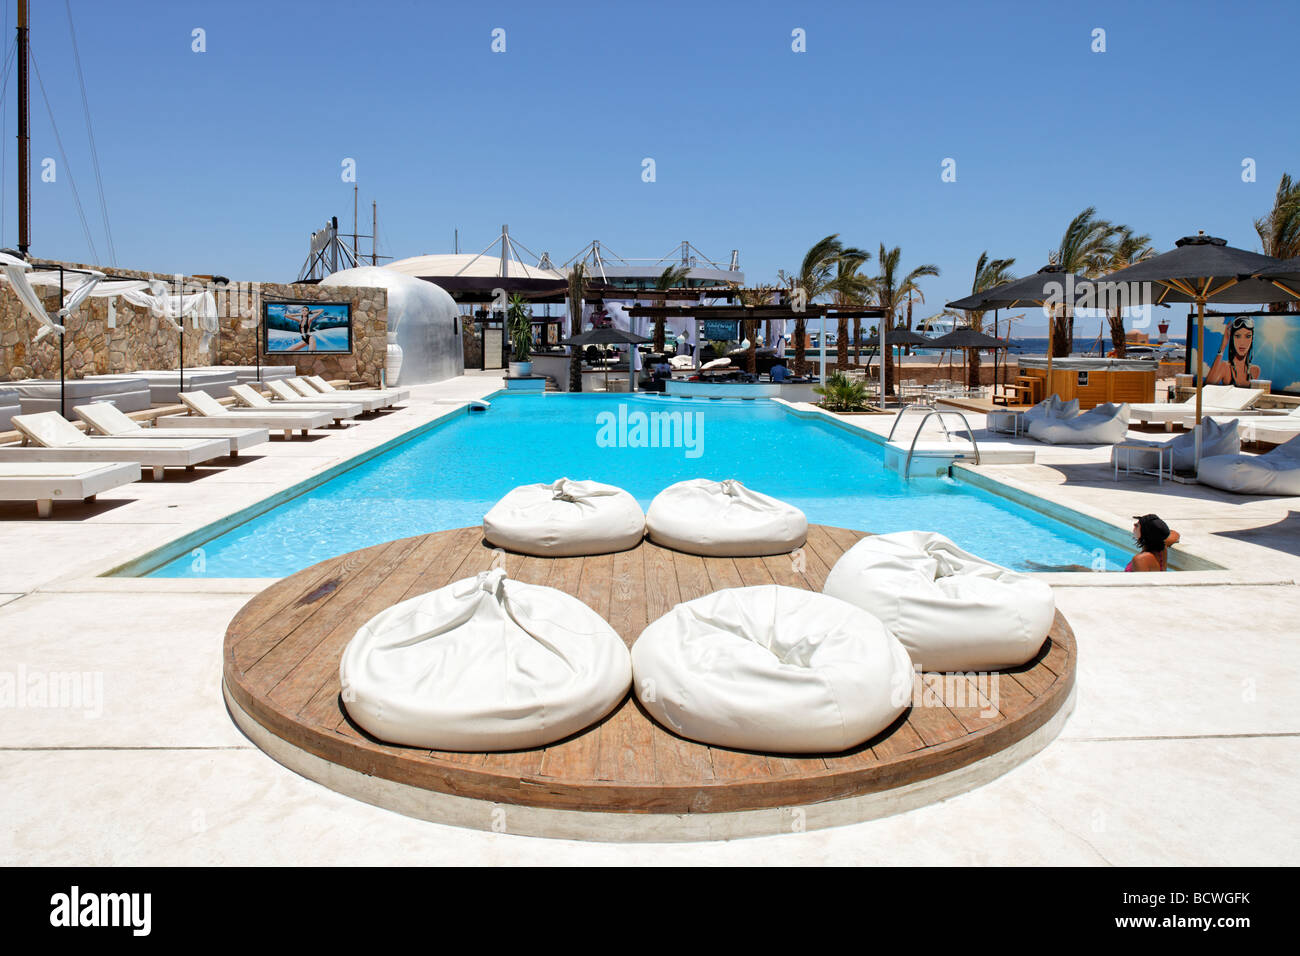 Discotheque with pool and bar, Hedkandi Beach Bar, marina, Hurghada, Egypt, Red Sea, Africa - Stock Image